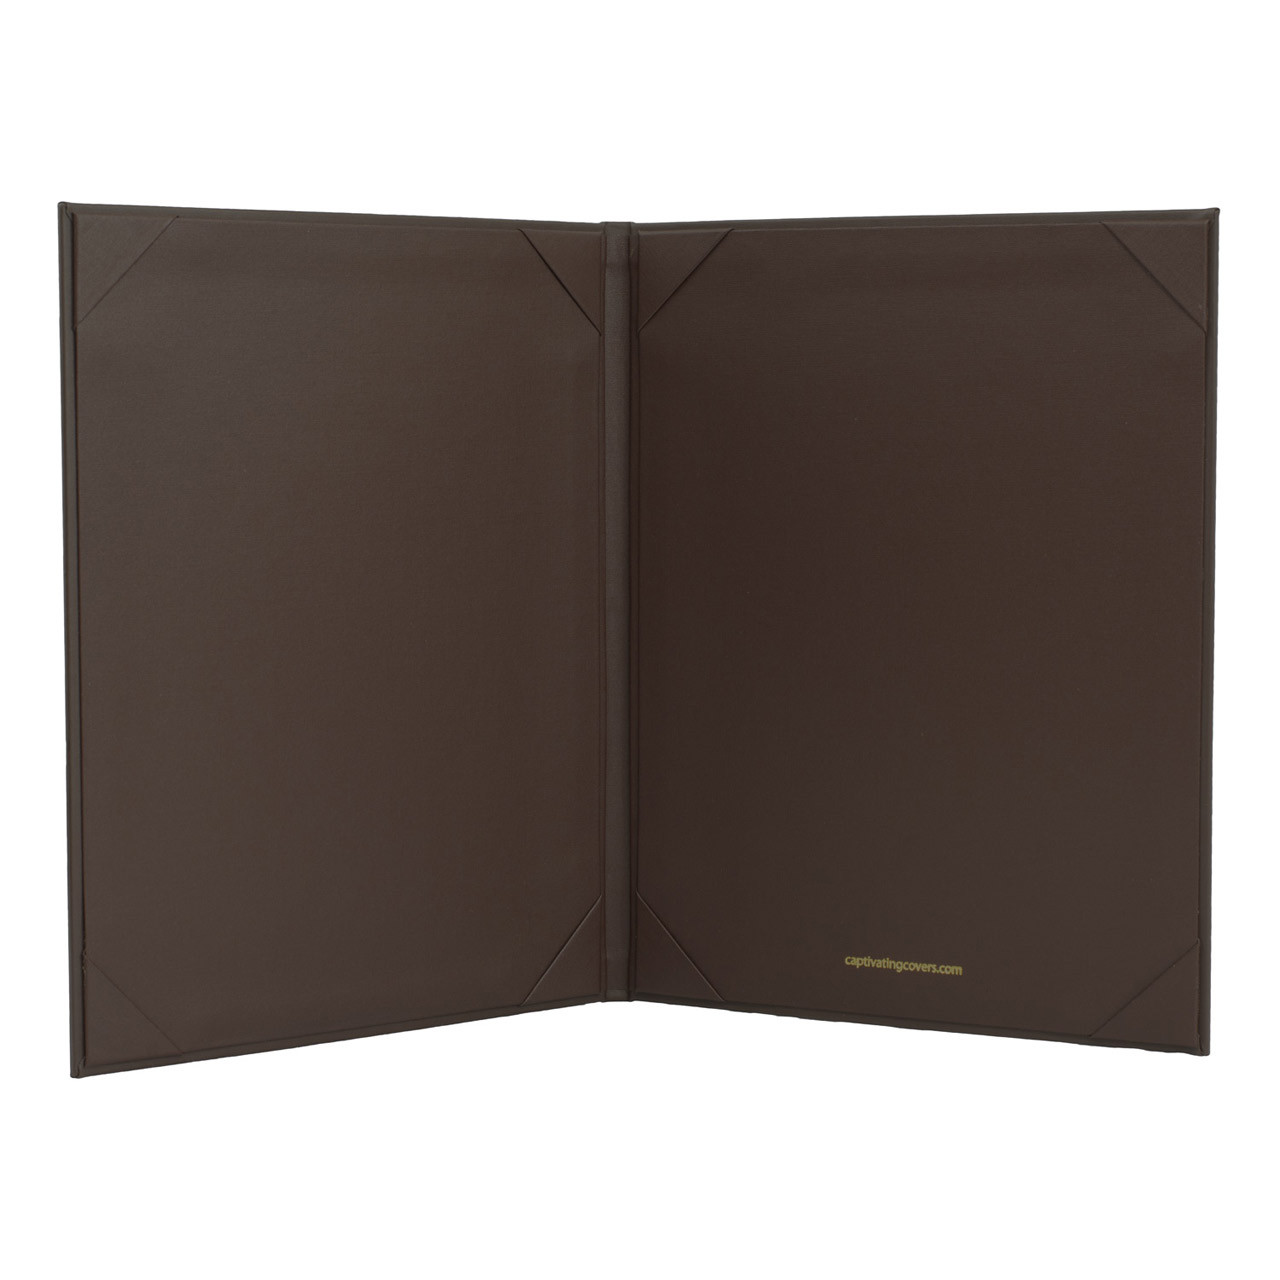 """Menu Cover in Dark Brown Faux Leather  2-Panels for 5.5"""" x 8.5"""" Menu Sheets (inside shown)"""